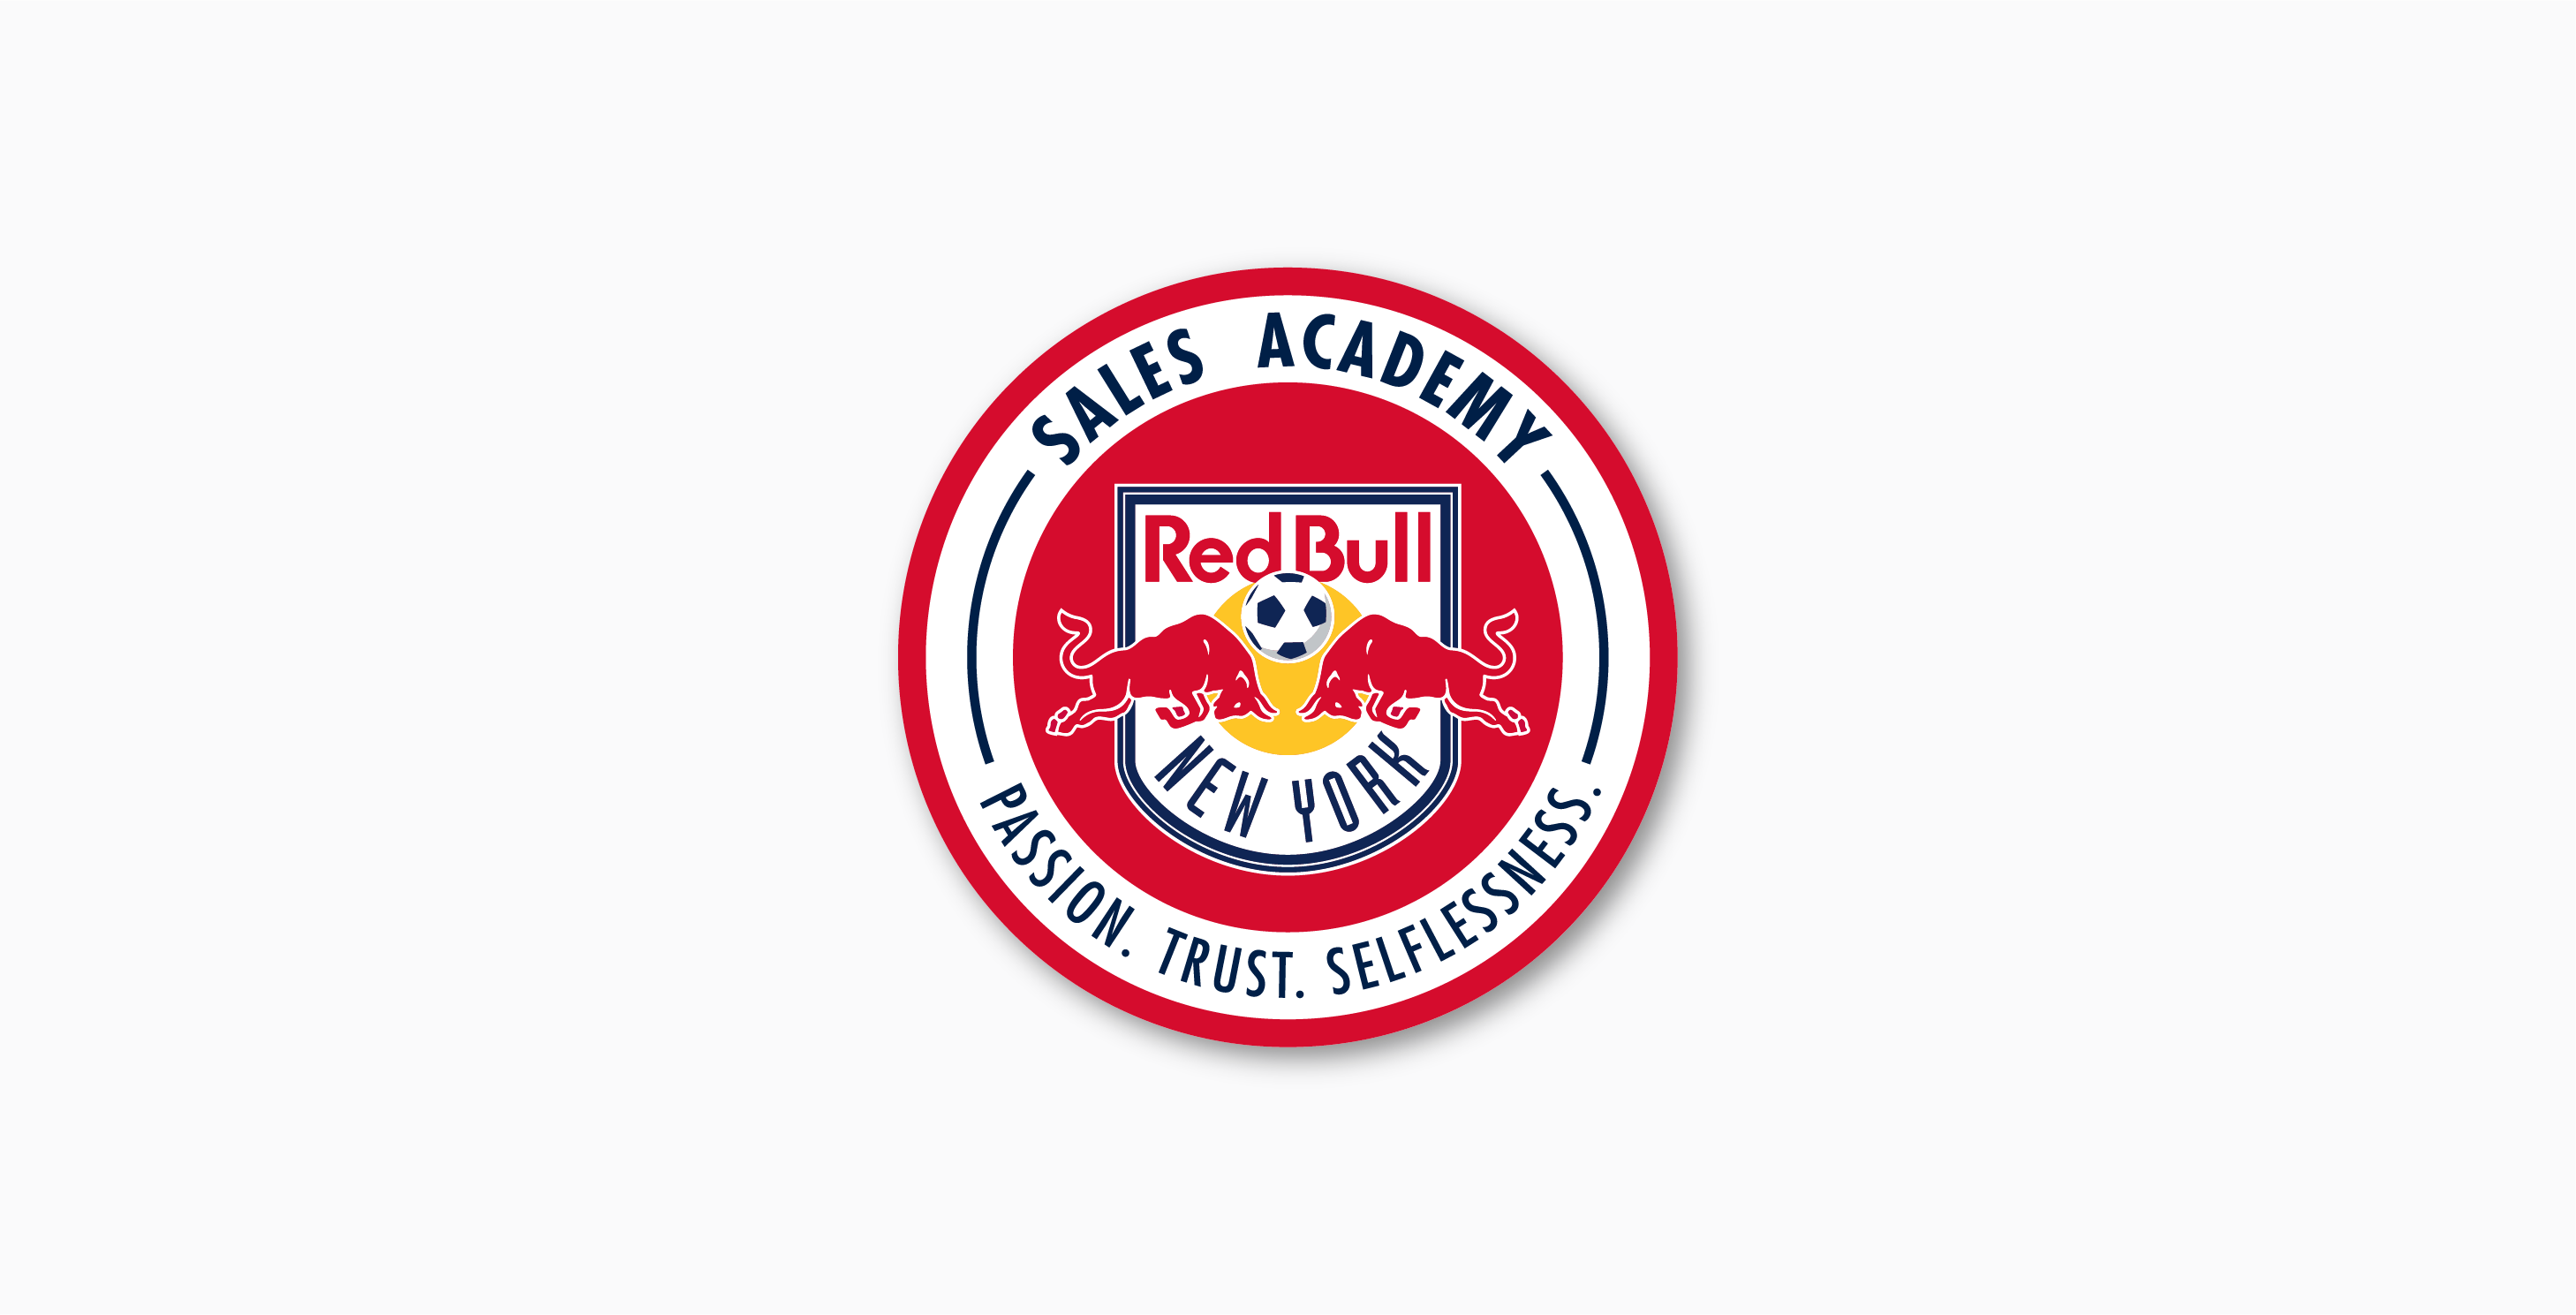 New York Red Bull Sales Academy Logo